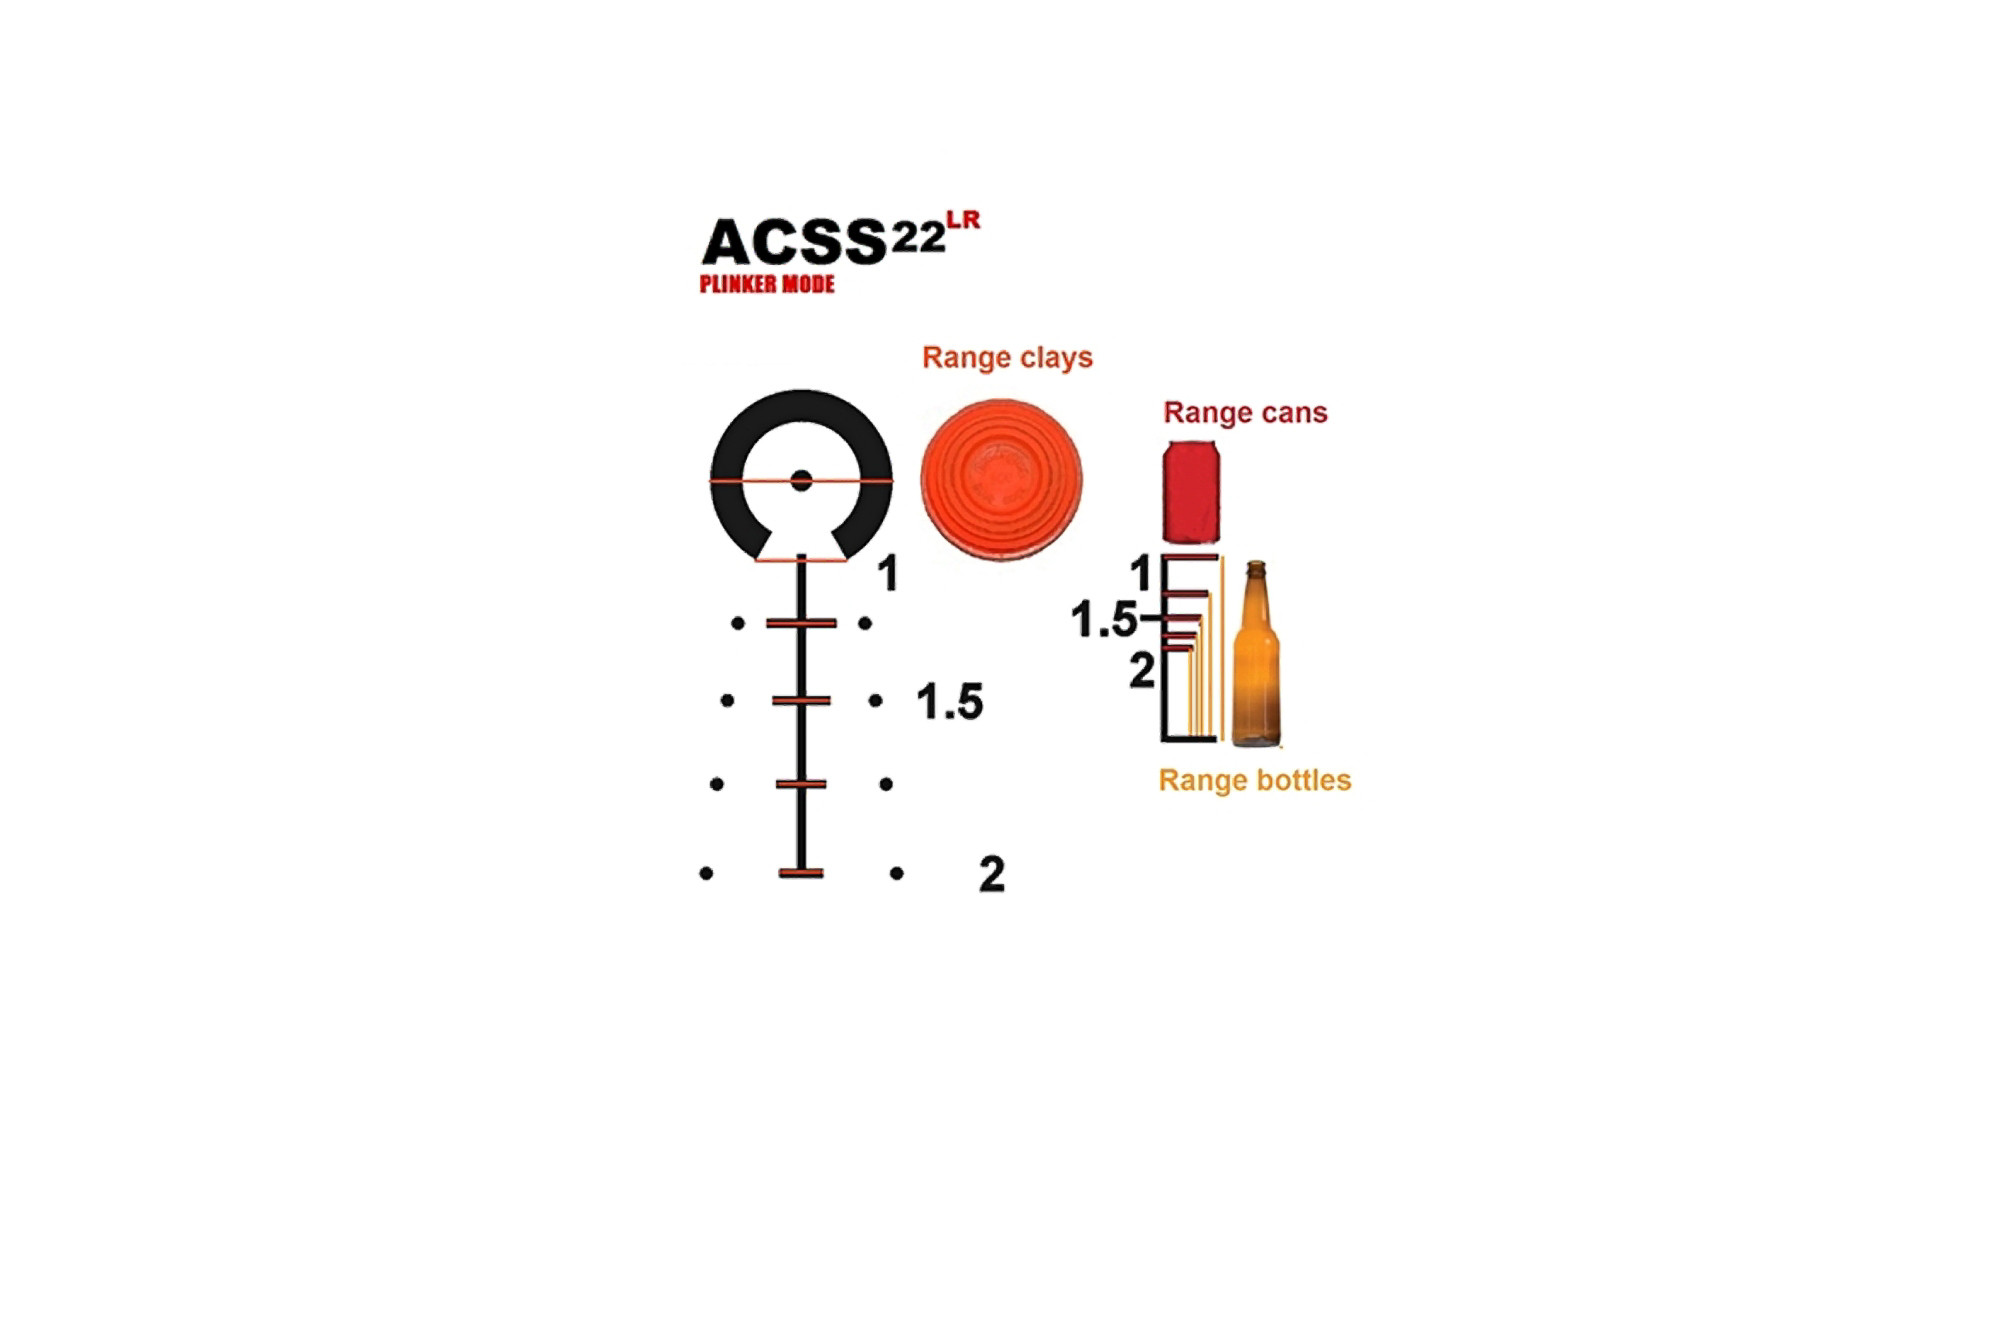 The 22lr acss reticle is great for plinking range clays, bottles, and cans for a fun day at the range